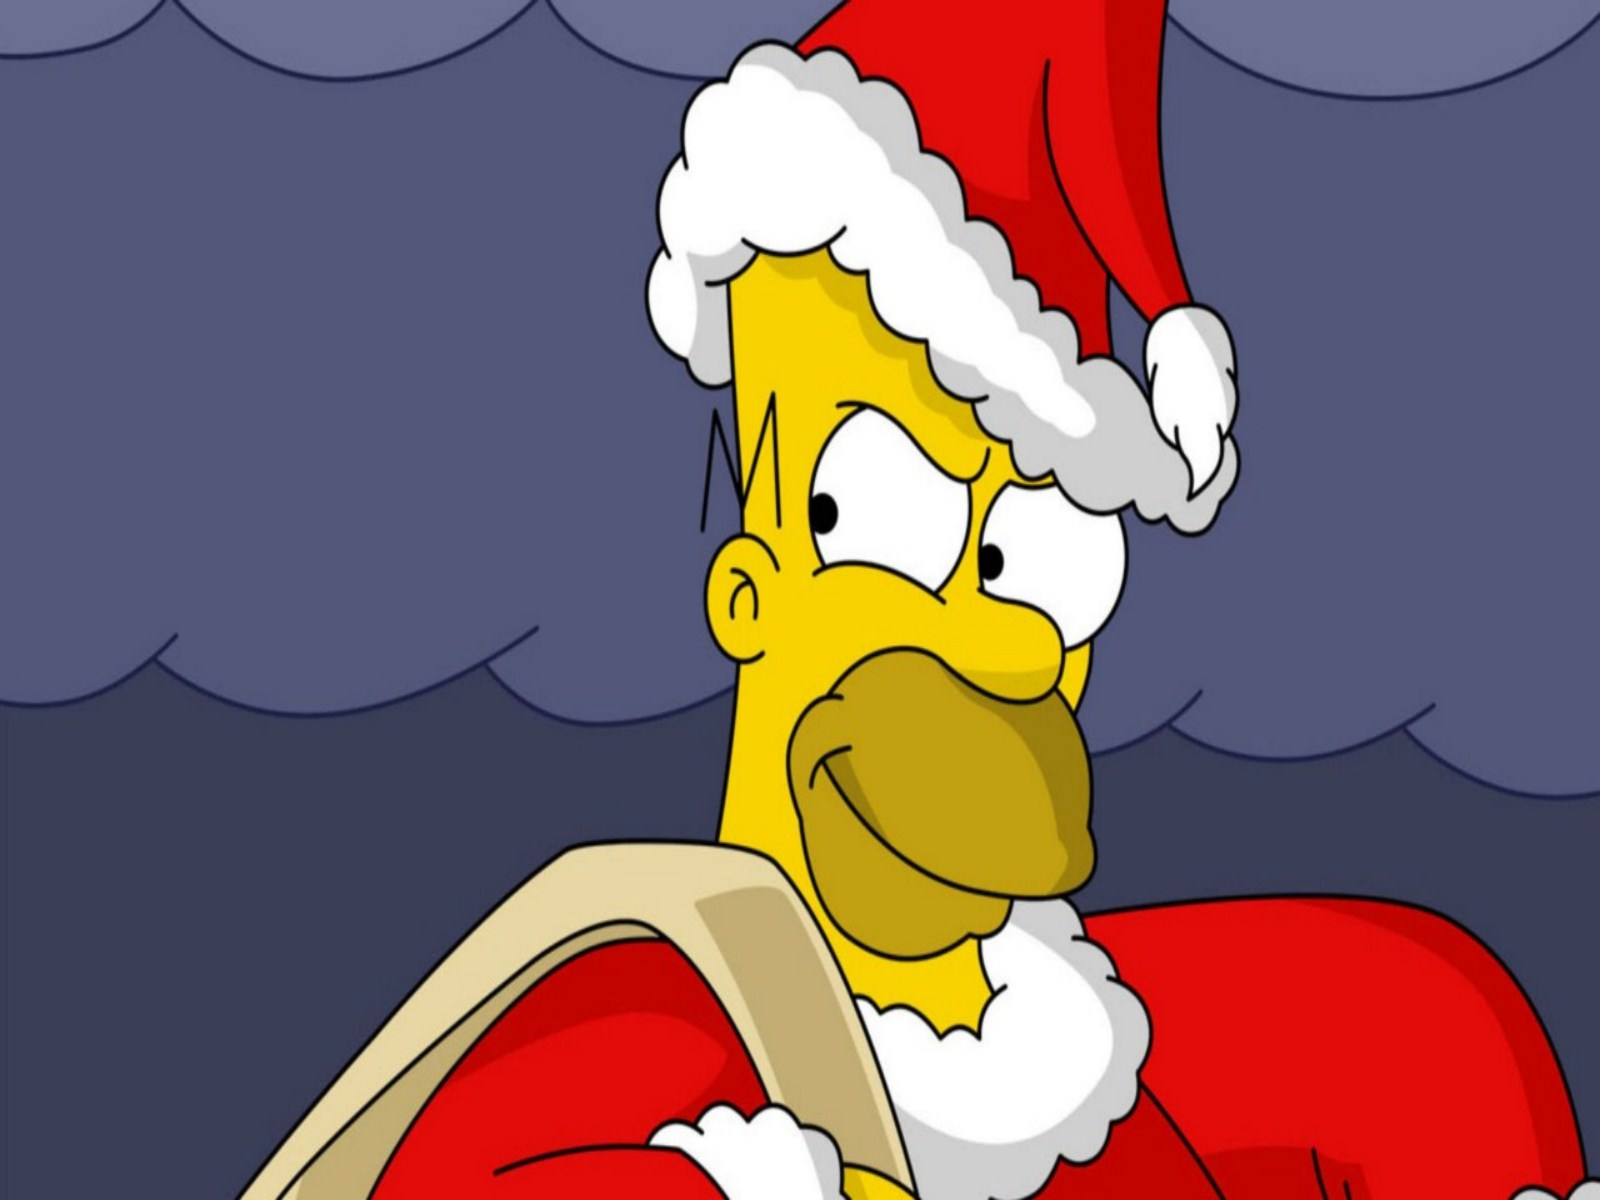 Simpsons Christmas Pictures Wallpaper   1600x1200   130302 1600x1200